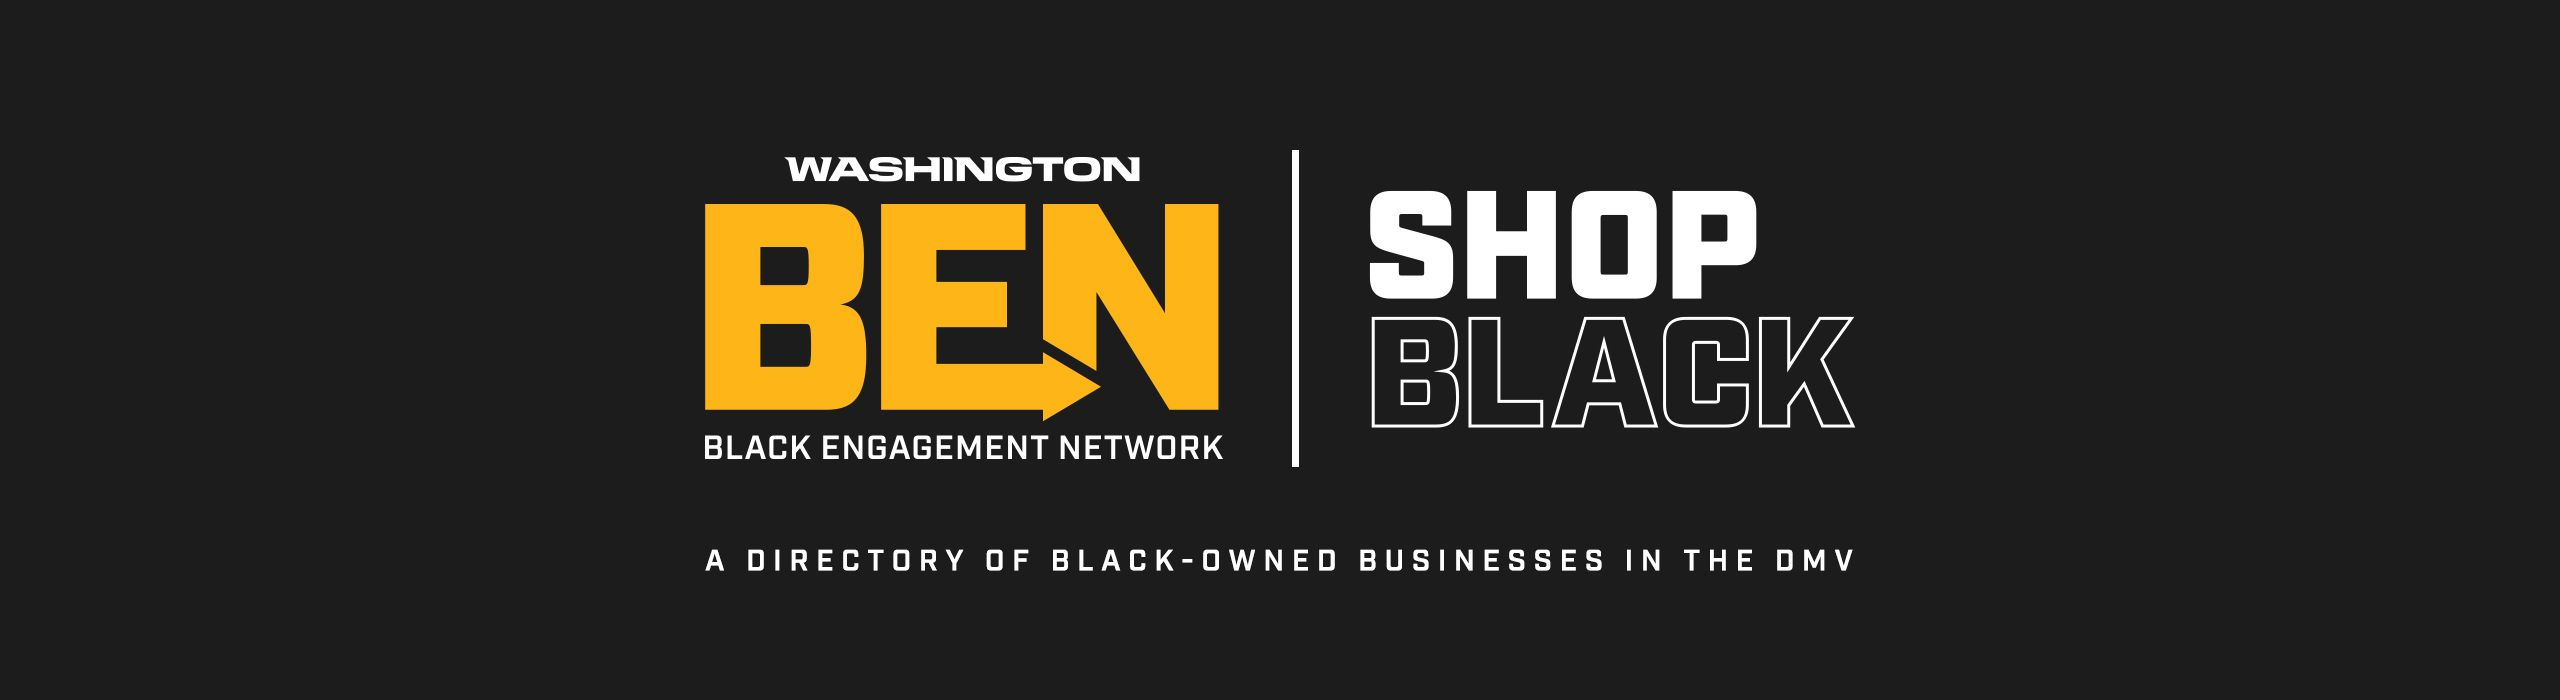 We encourage our fans to support the black-owned small businesses that serve our community. The Washington Football Team's Black Engagement Network developed a Shop Black Shopping & Dining Directory of small businesses from all over the DMV that are owned by African Americans. Click below to start shopping or to add your business to the directory!